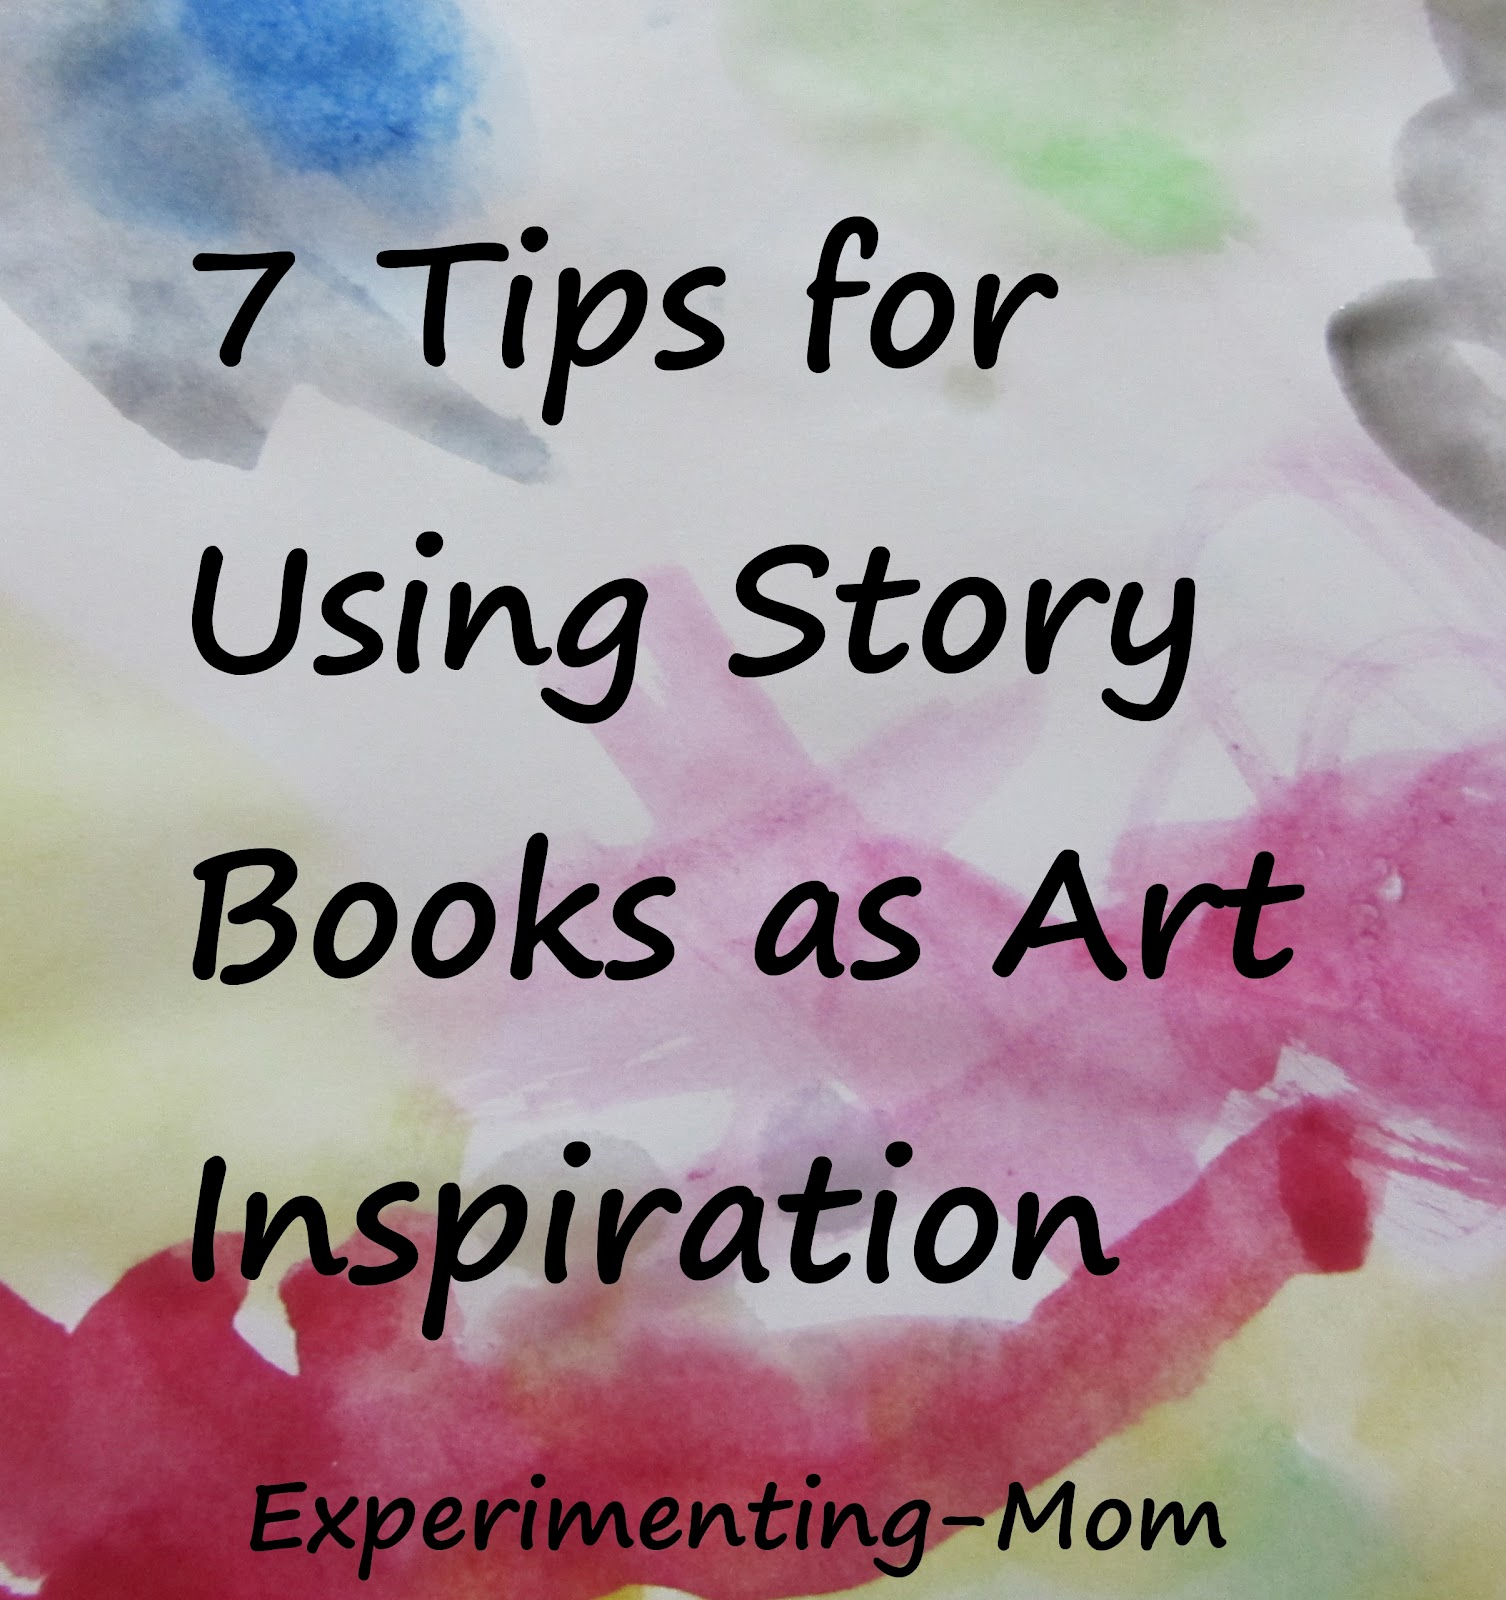 Using Story Books As Art Inspiration